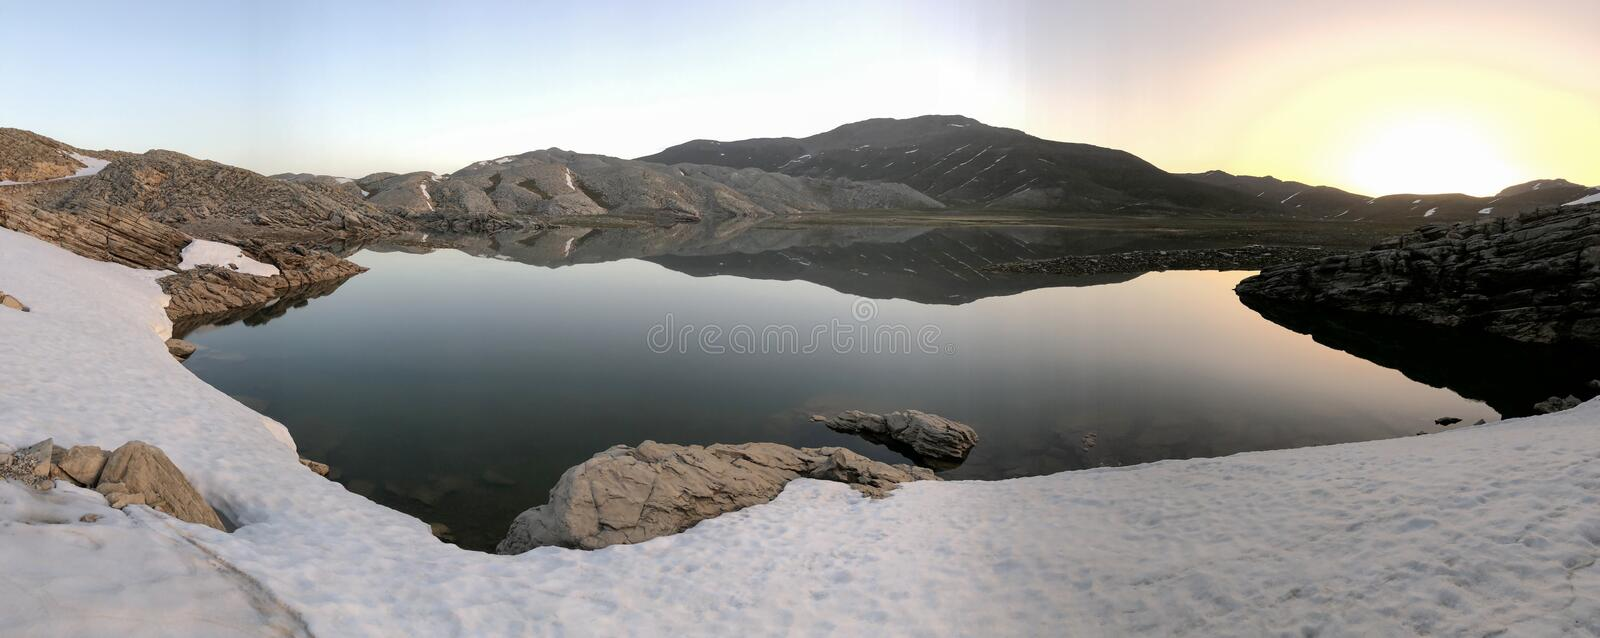 Magnificent mountain lakes, snowmelt and waters. Spectacular views and mountain lakes stock image